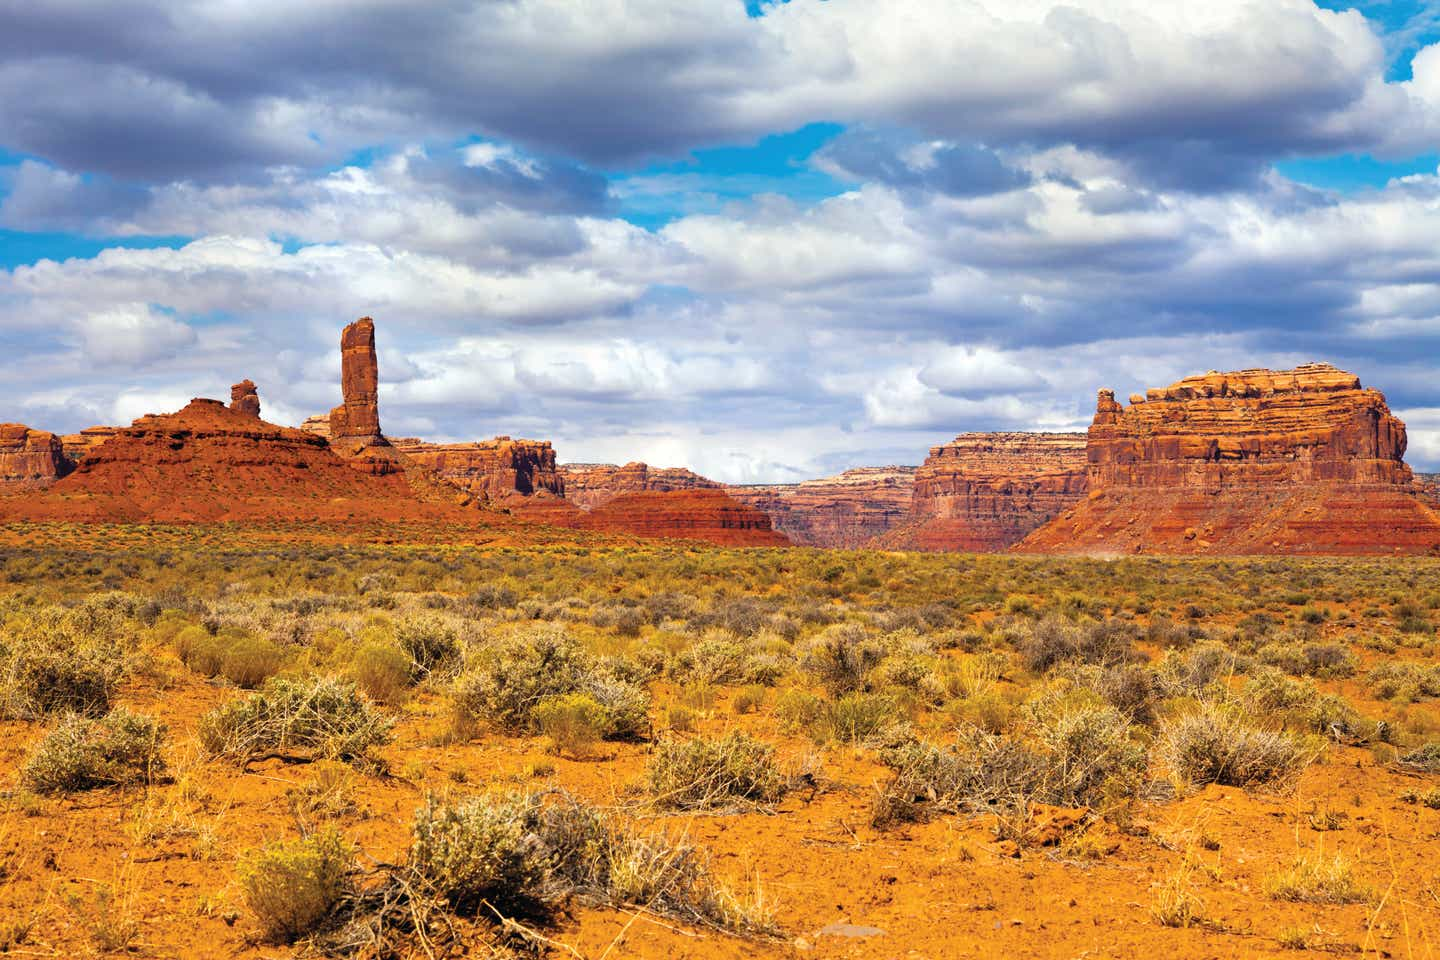 Hike the red clay trails of Arizona